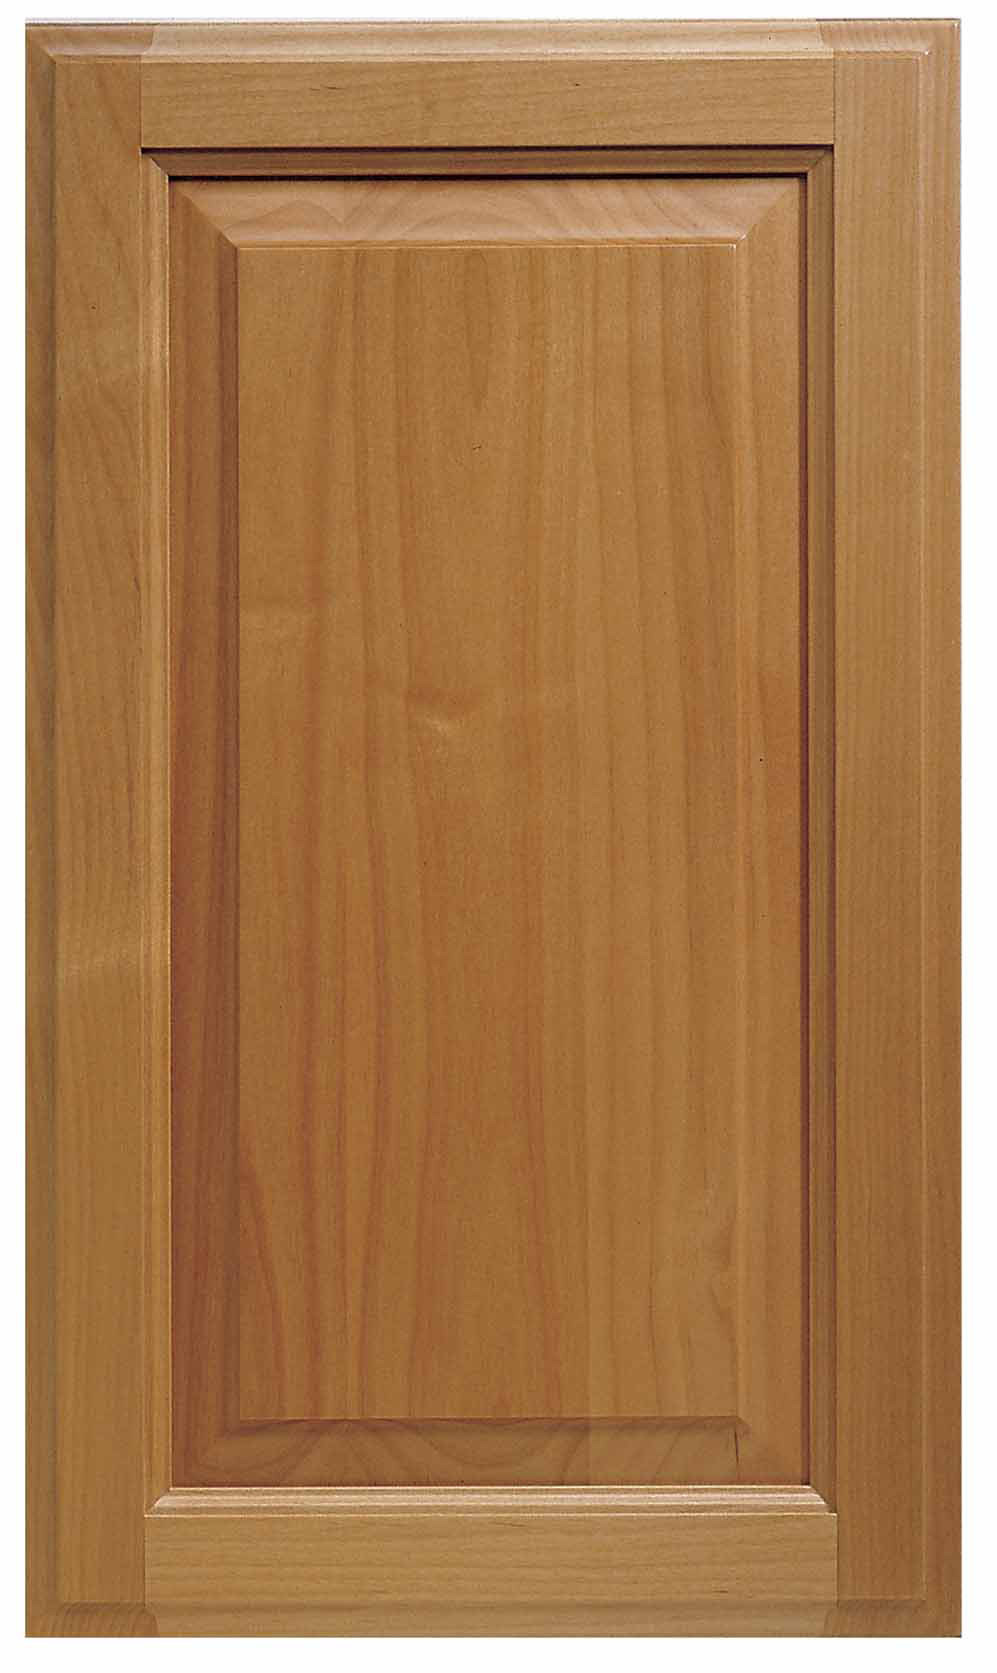 Replacement Cabinet Doors Lowes Inspirational Cabinet Doors Archives — Melissa Francishuster Home Design